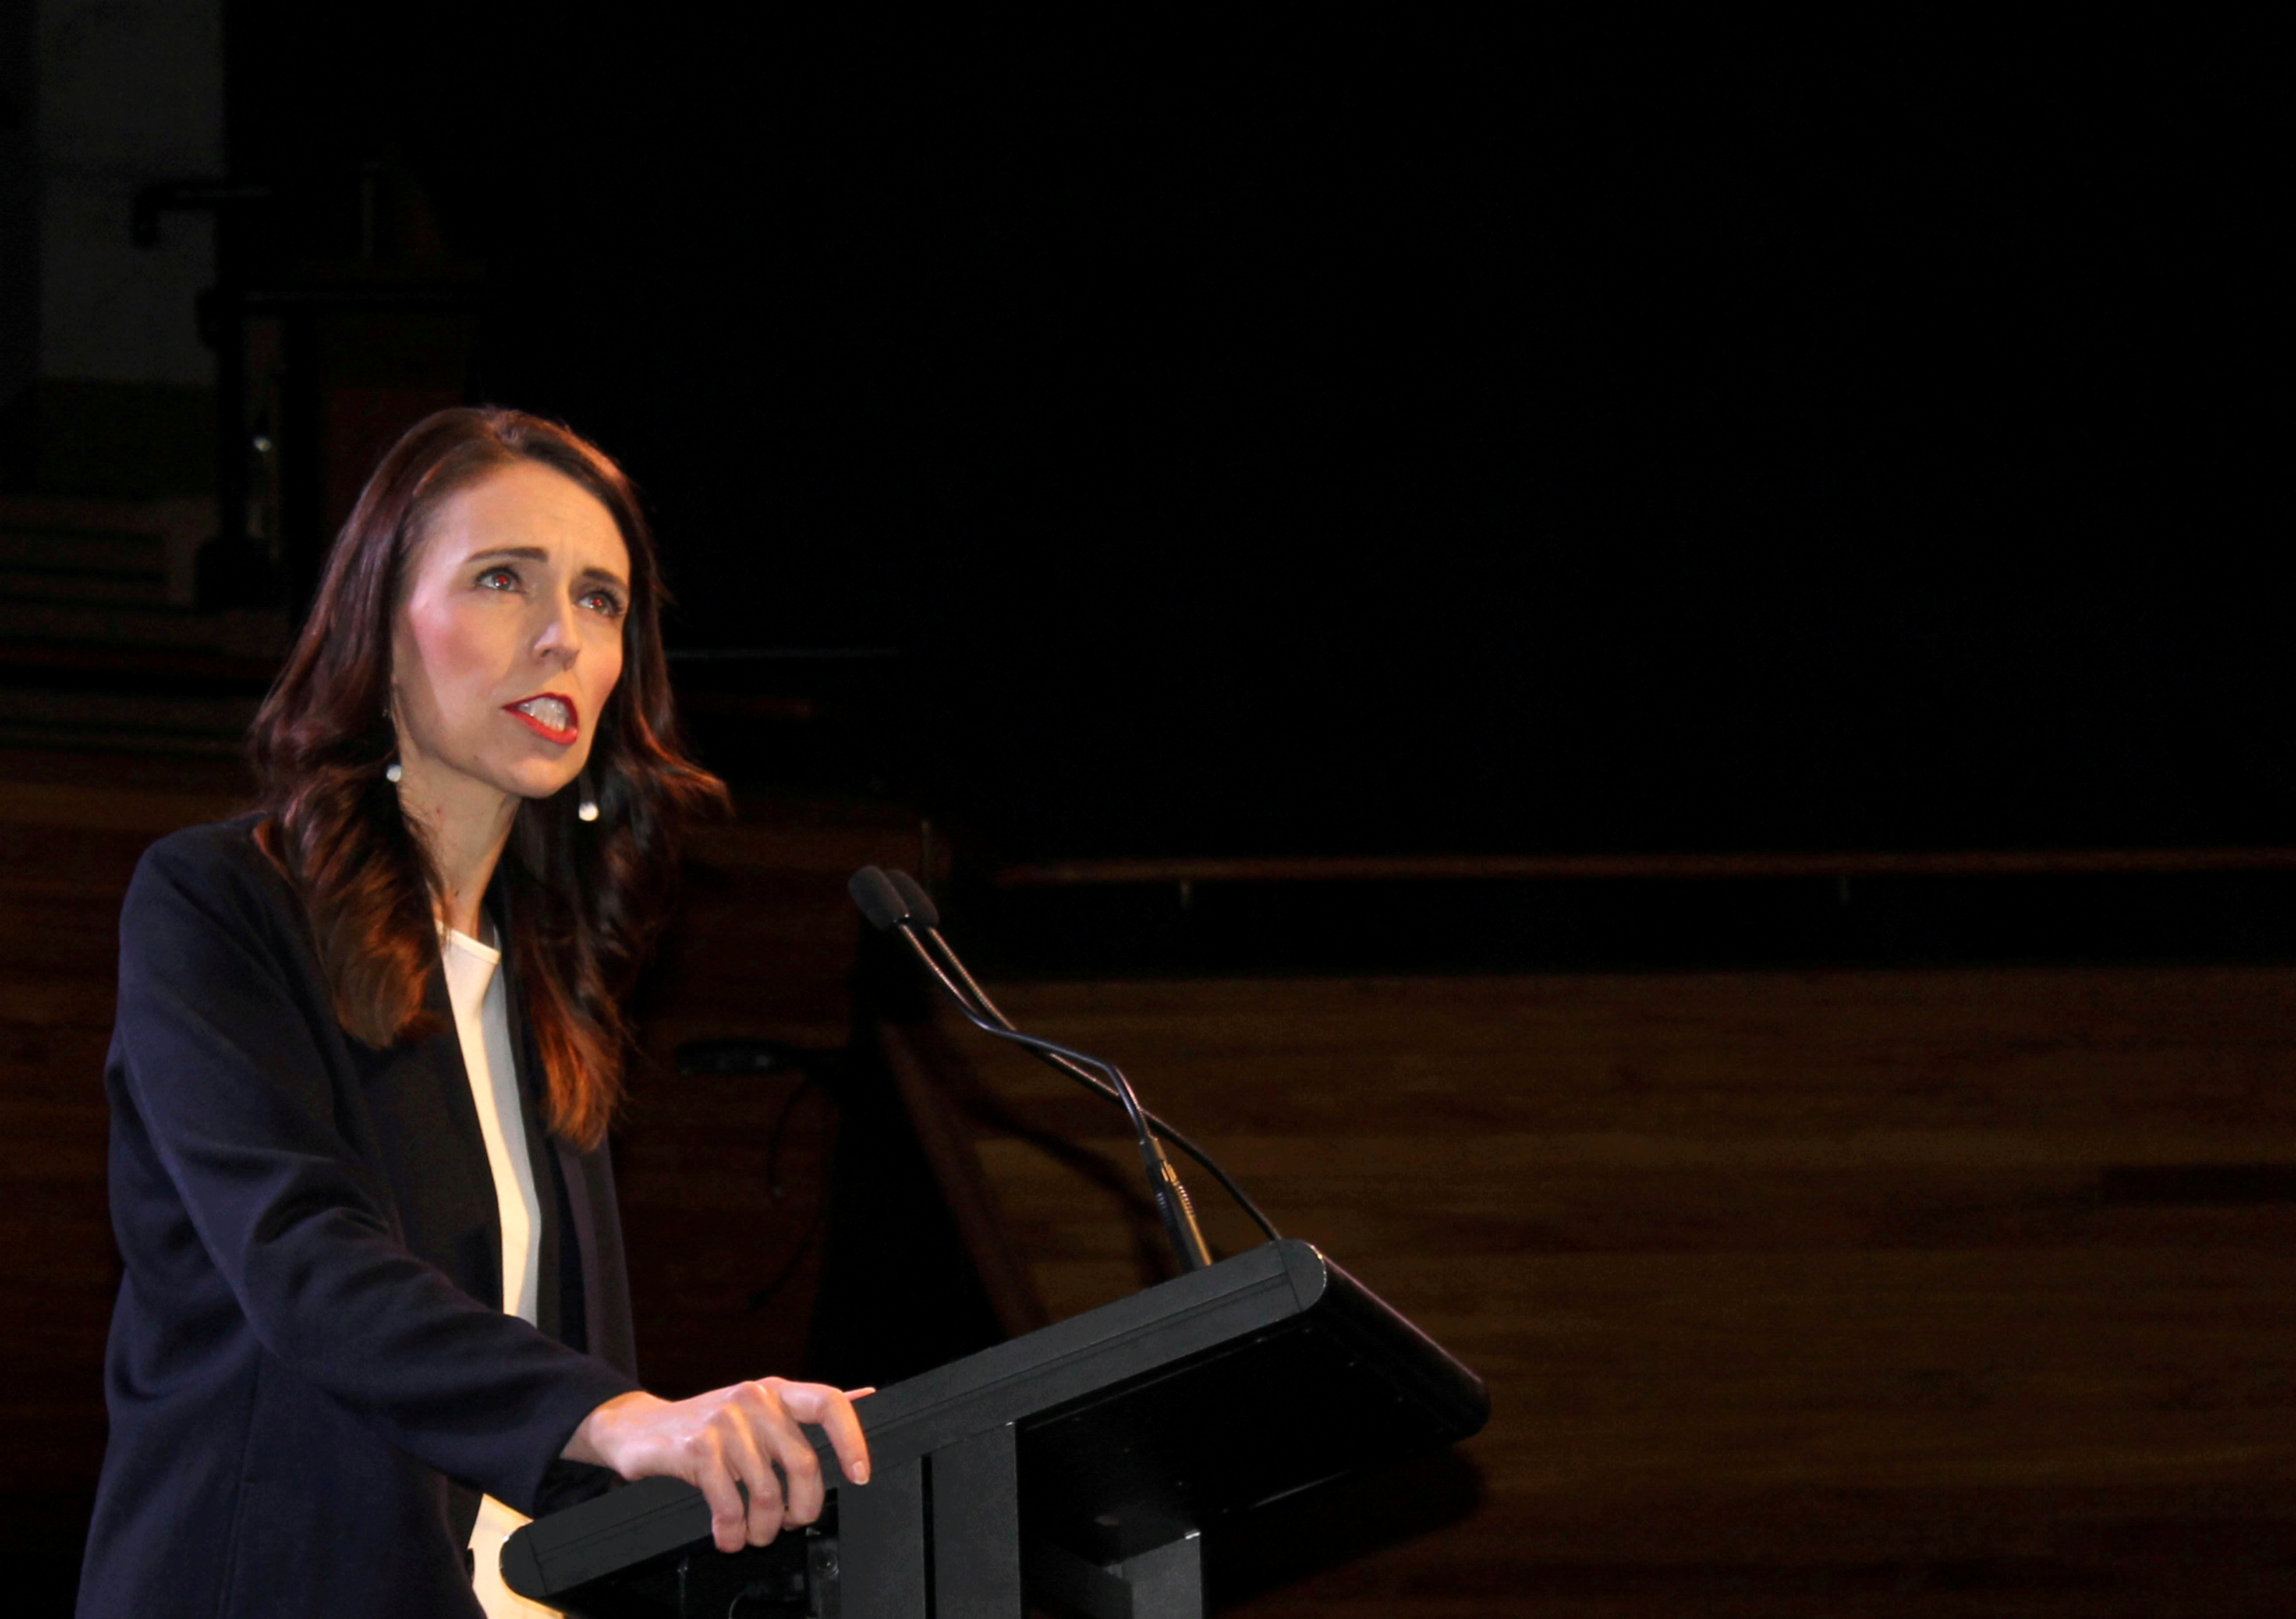 Prime Minister Jacinda Ardern addresses supporters at a Labour Party event in Wellington, New Zealand, October 11, 2020. REUTERS/Praveen Menon/